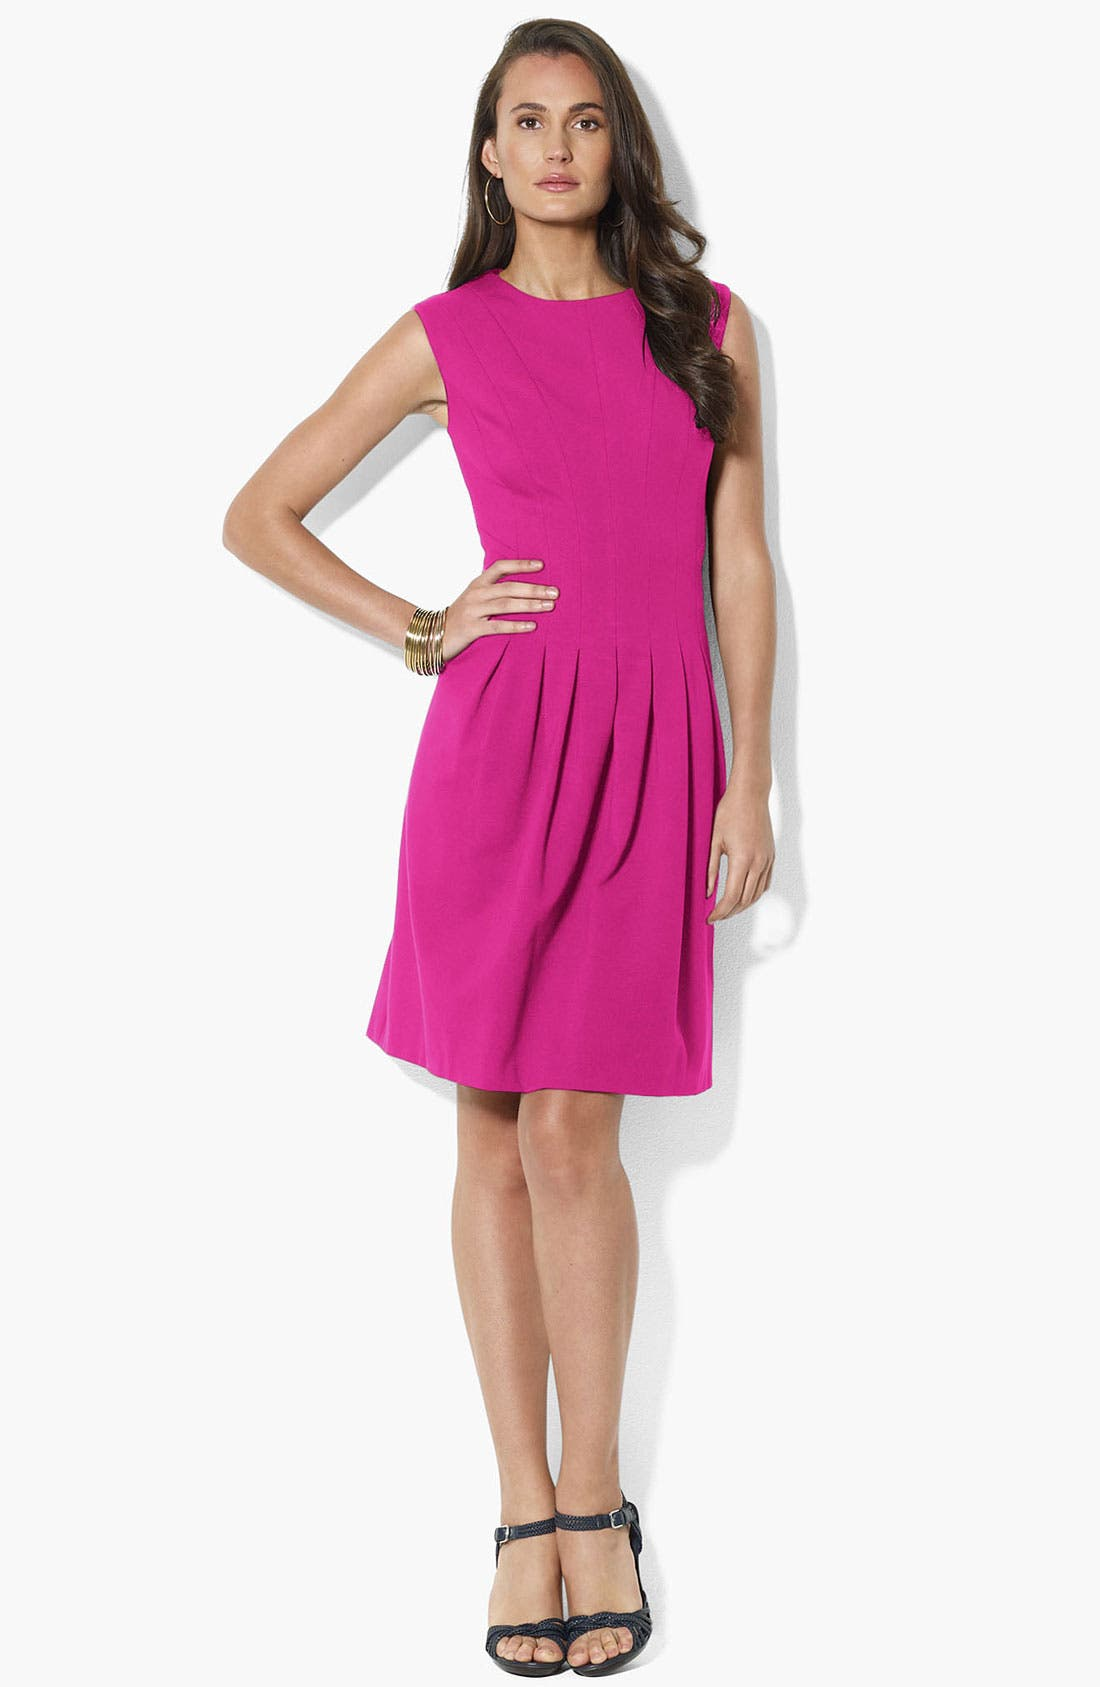 Alternate Image 1 Selected - Lauren Ralph Lauren Ponte Knit Fit & Flare Dress